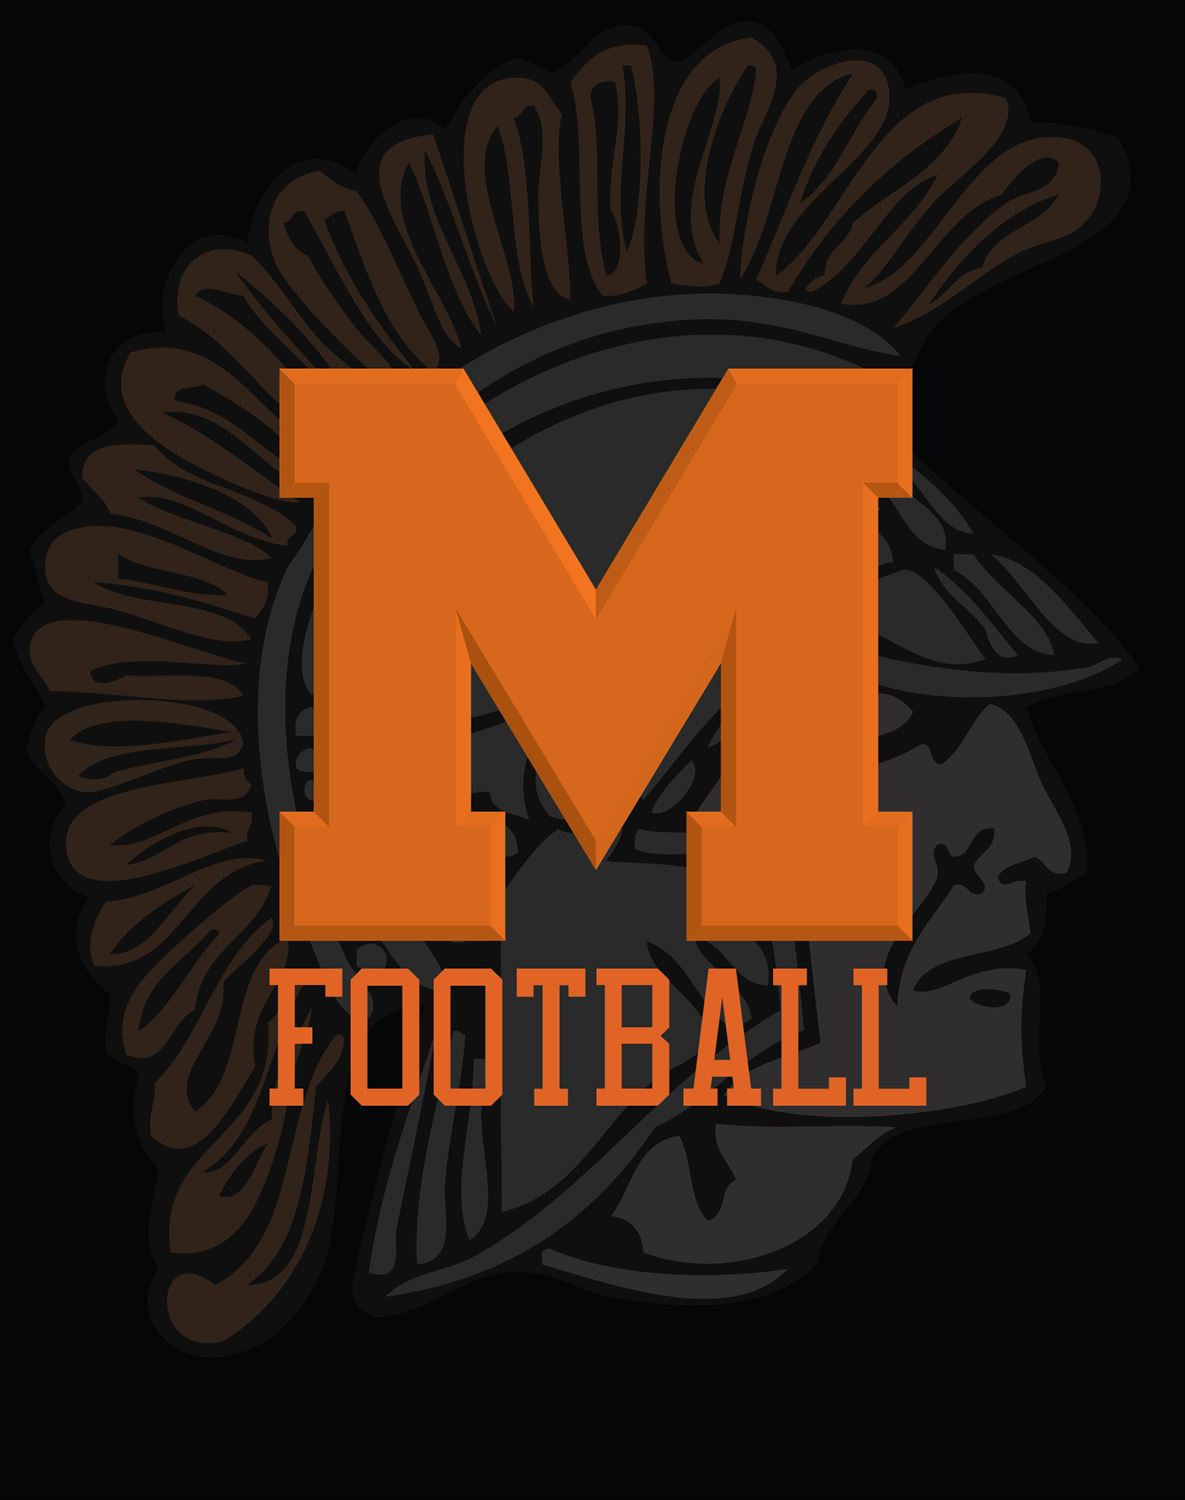 McHenry High School - Boys Frosh/Soph Football